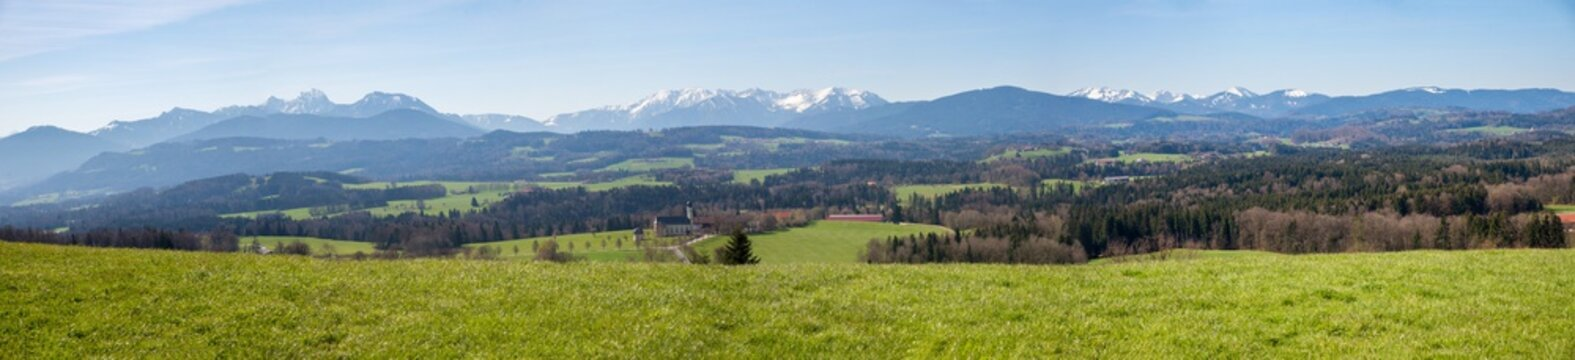 wide mountain panorama, view from Irschenberg hill to bavarian alps and rural landscape